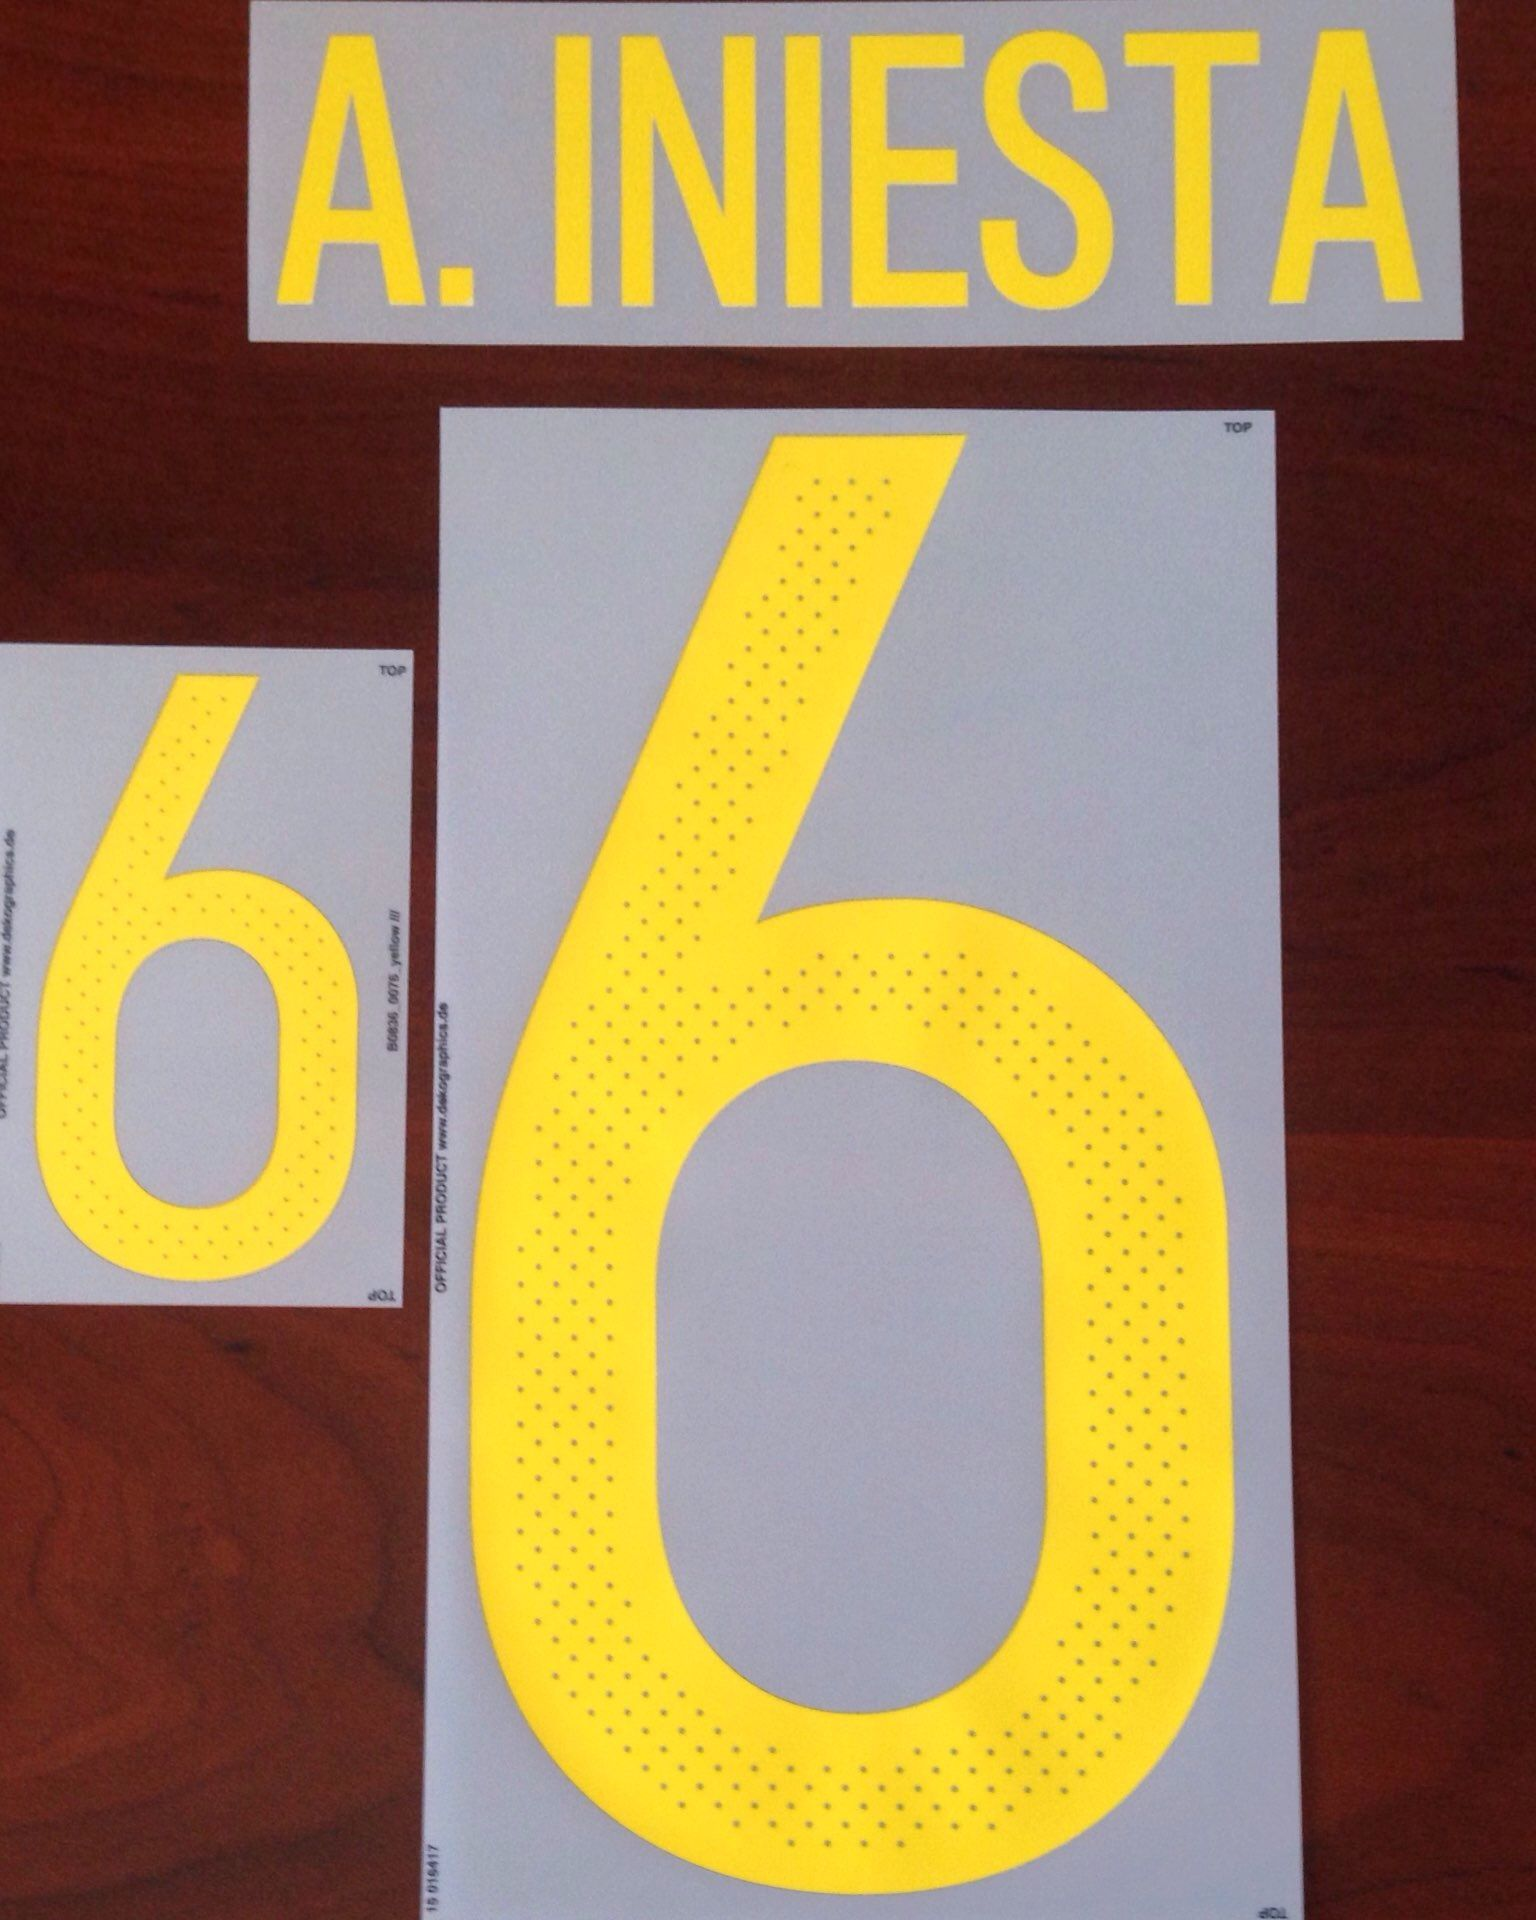 d63e8606fbd EURO 2016 Spain Home Shirt 2016-17 A.INIESTA 6 Adidas DekoGraphics Name  Number Set